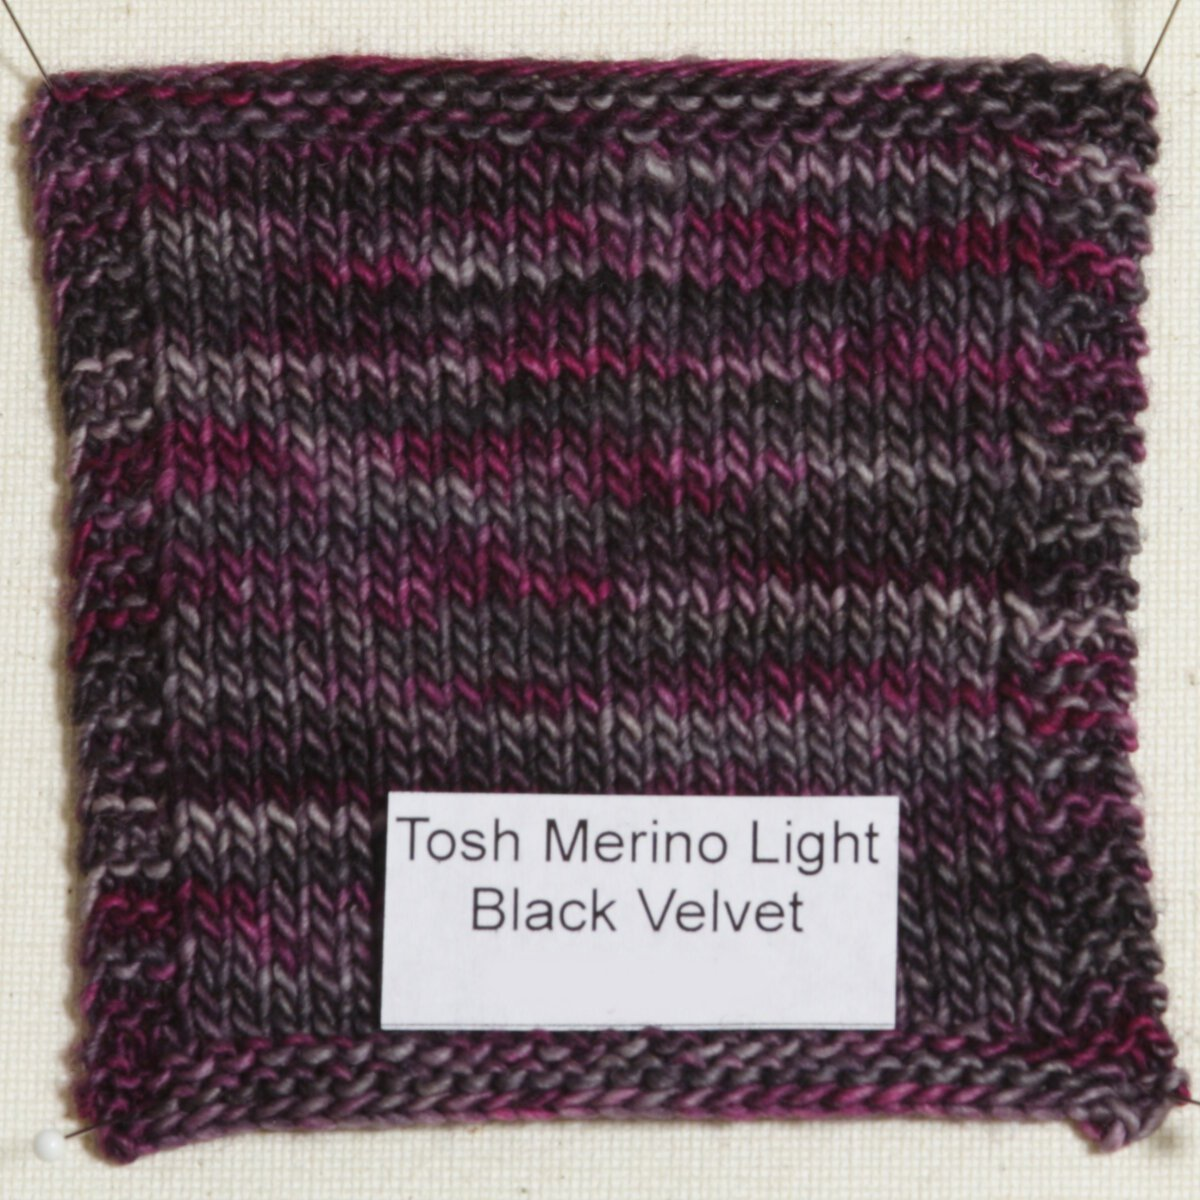 madelinetosh tosh merino light samples yarn black velvet video. Black Bedroom Furniture Sets. Home Design Ideas